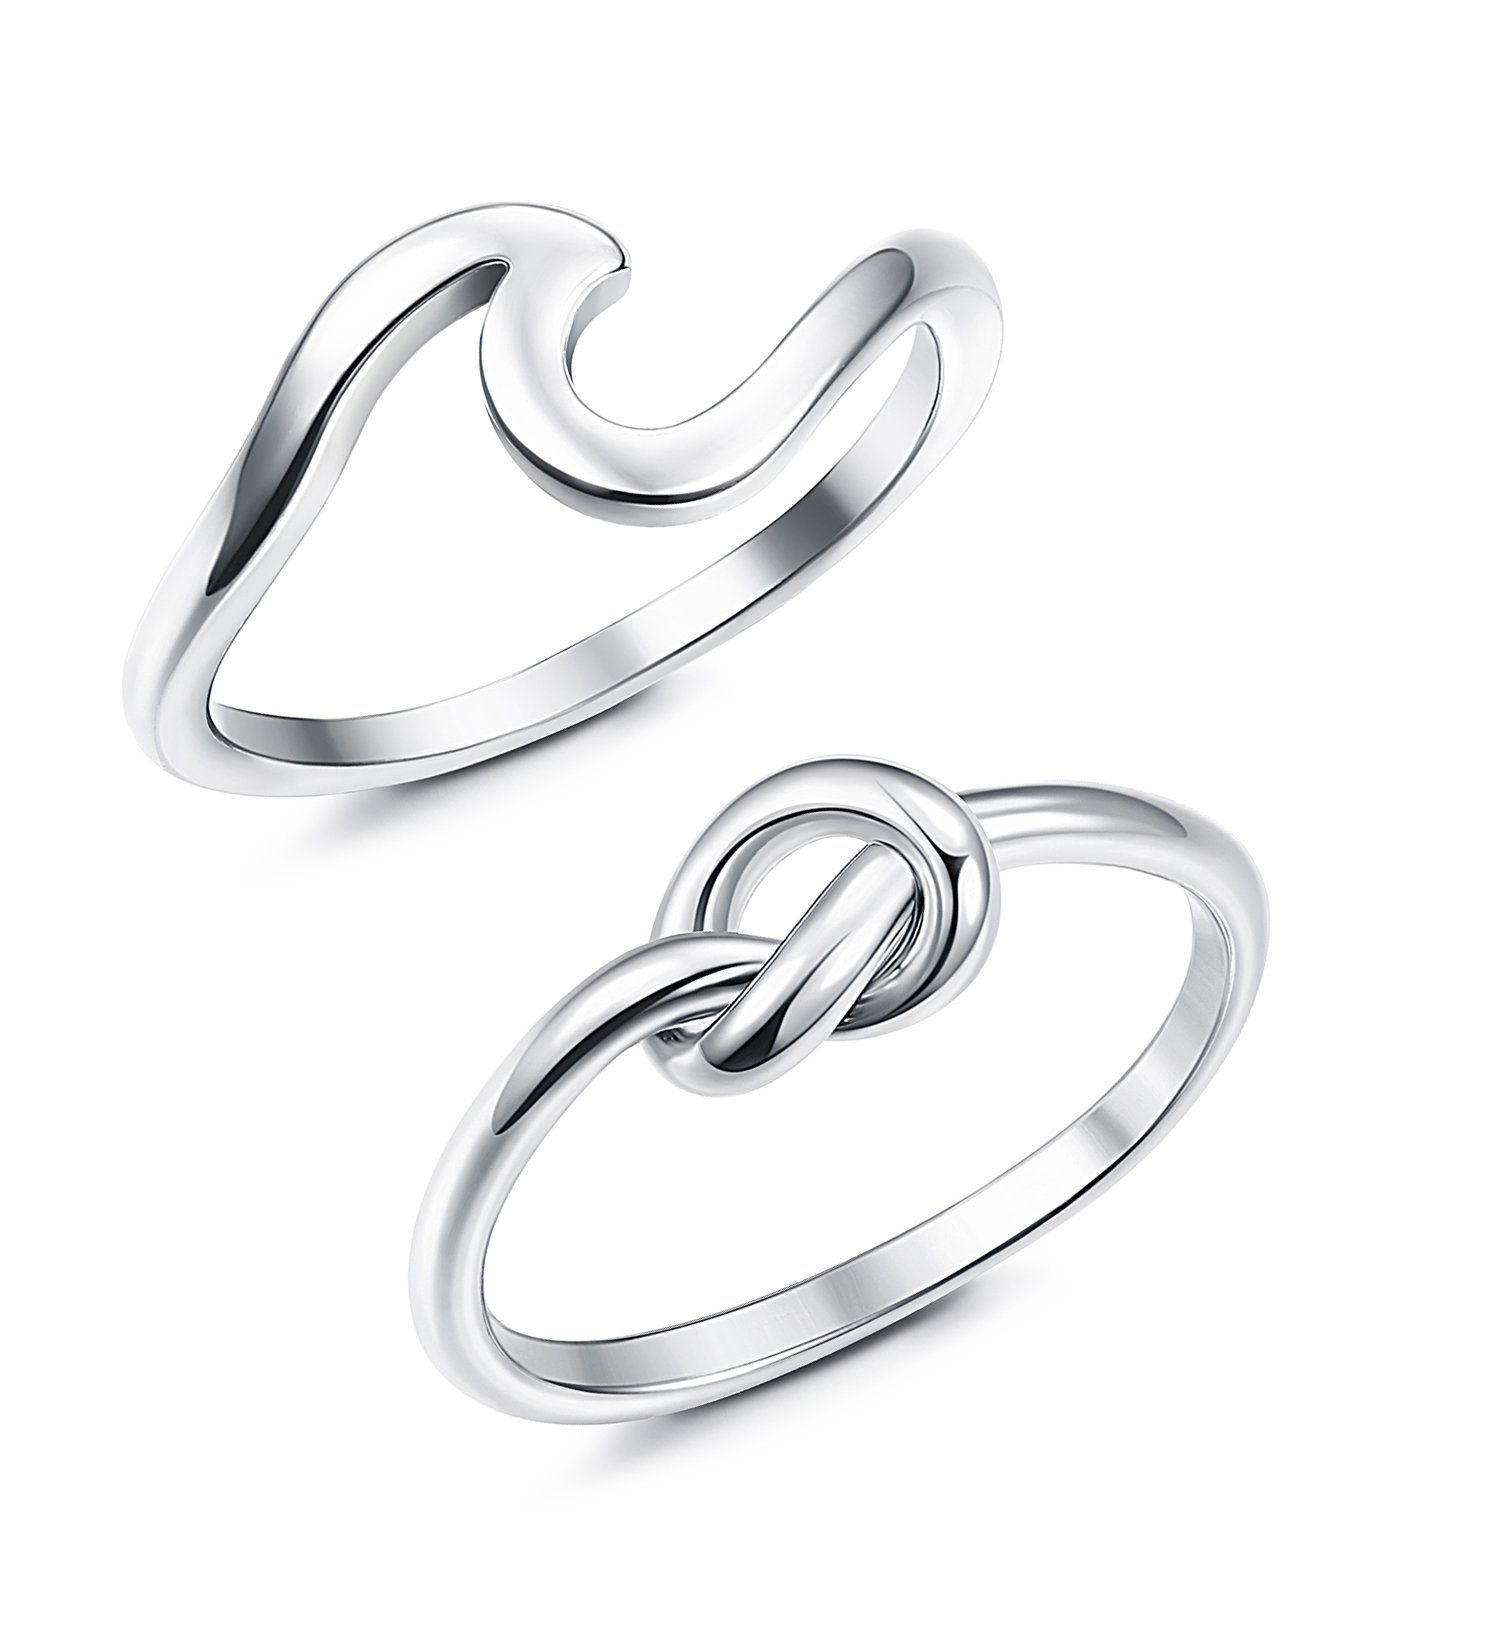 JOERICA 2PCS Stainless Steel Love Knot Womens Rings for Girls Wave Rings Size 8